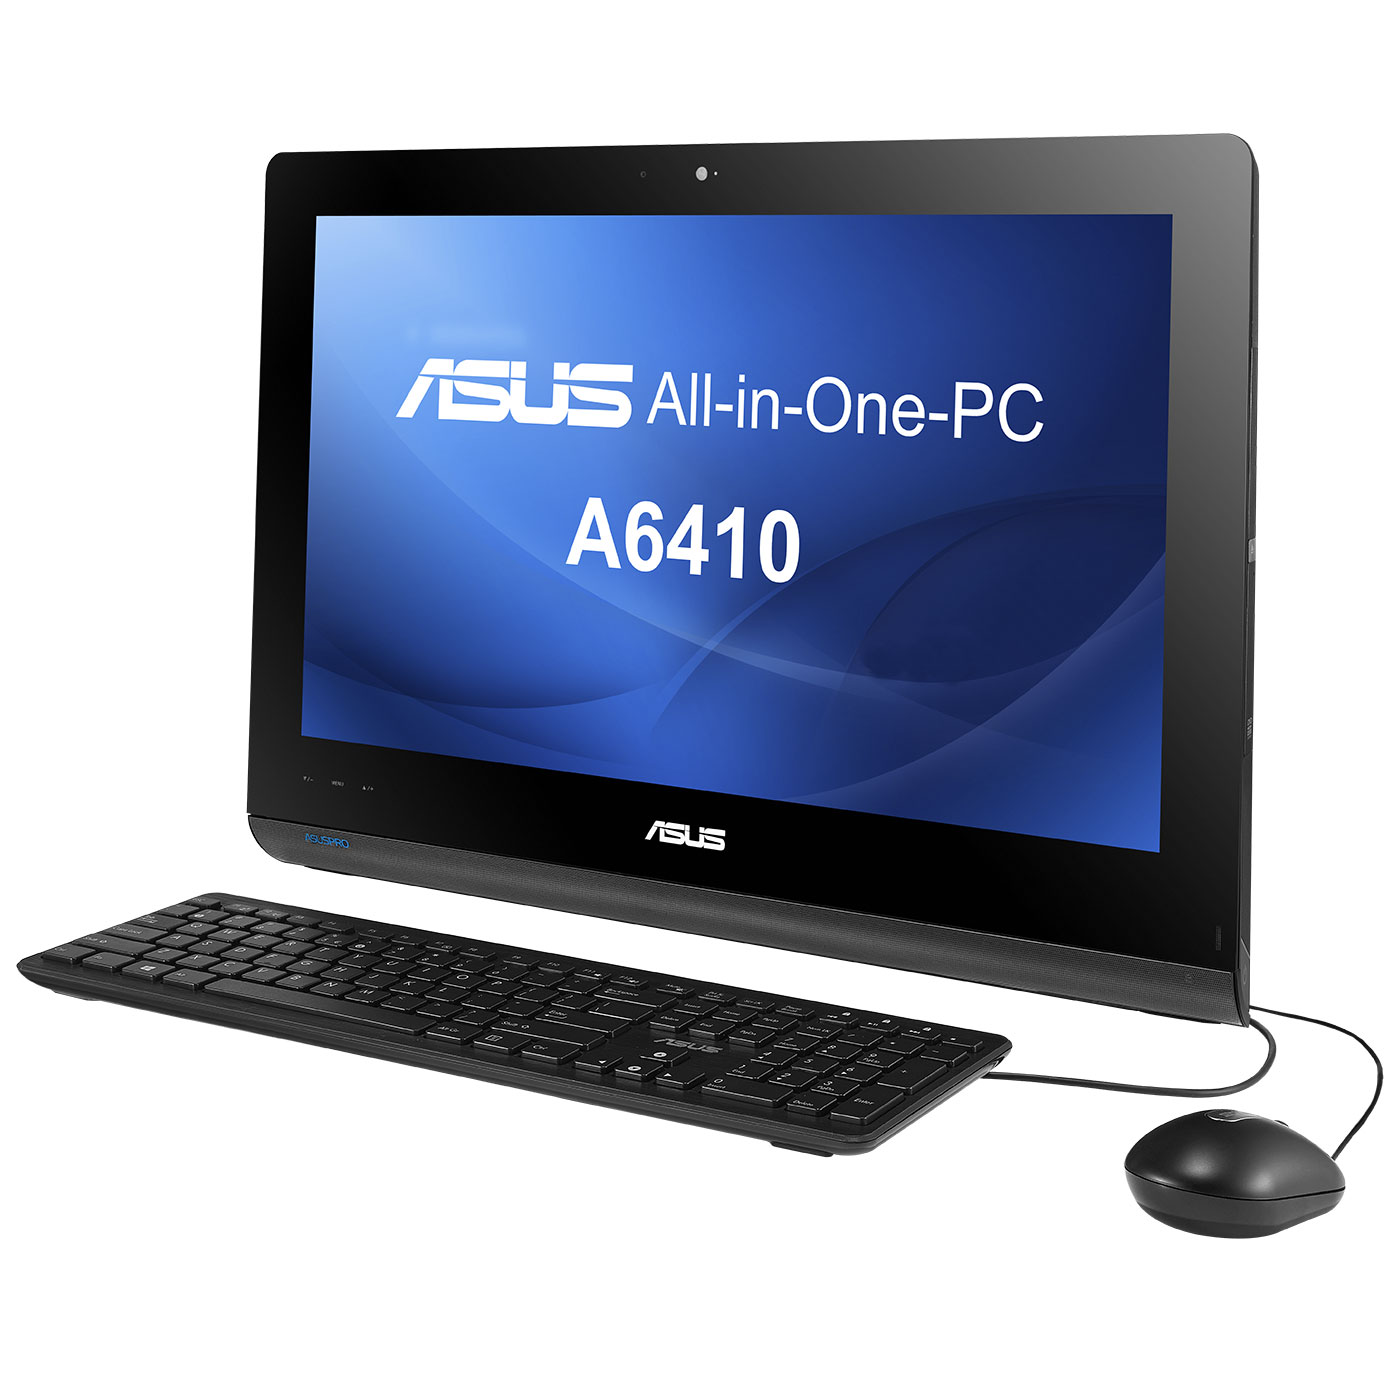 Asus all in one pc a6410 bc046t pc de bureau asus sur ldlc - Ordinateur de bureau windows 7 pro ...